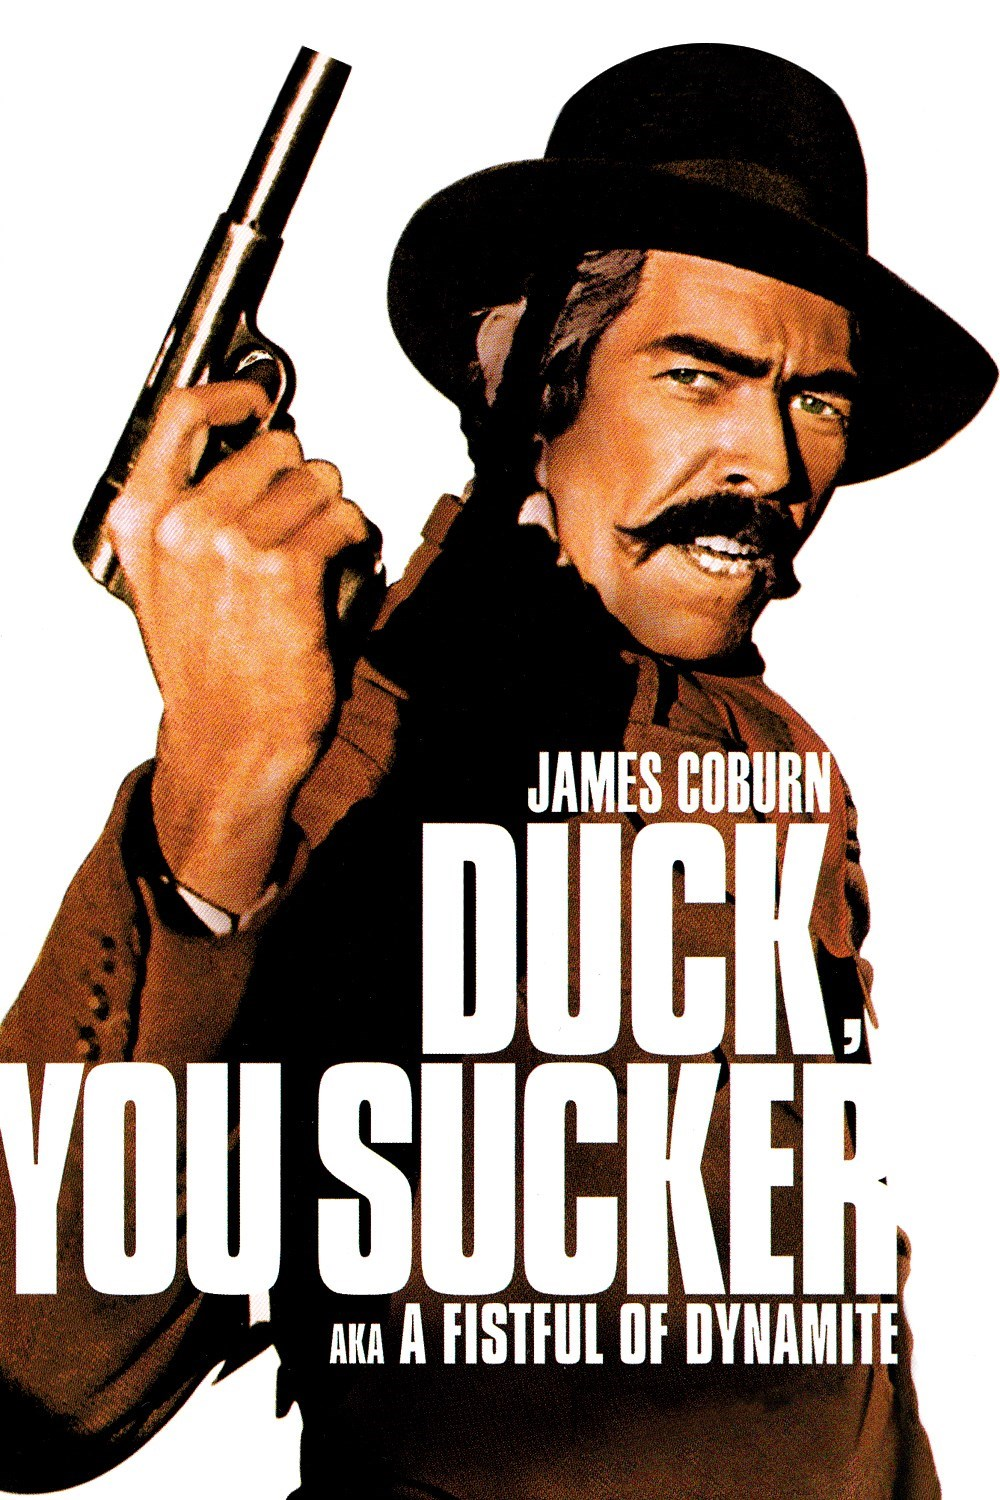 35mm screening of Sergio Leone's 1971 classic Duck You Sucker showing April 17th at 7pm at the Waterville Opera House